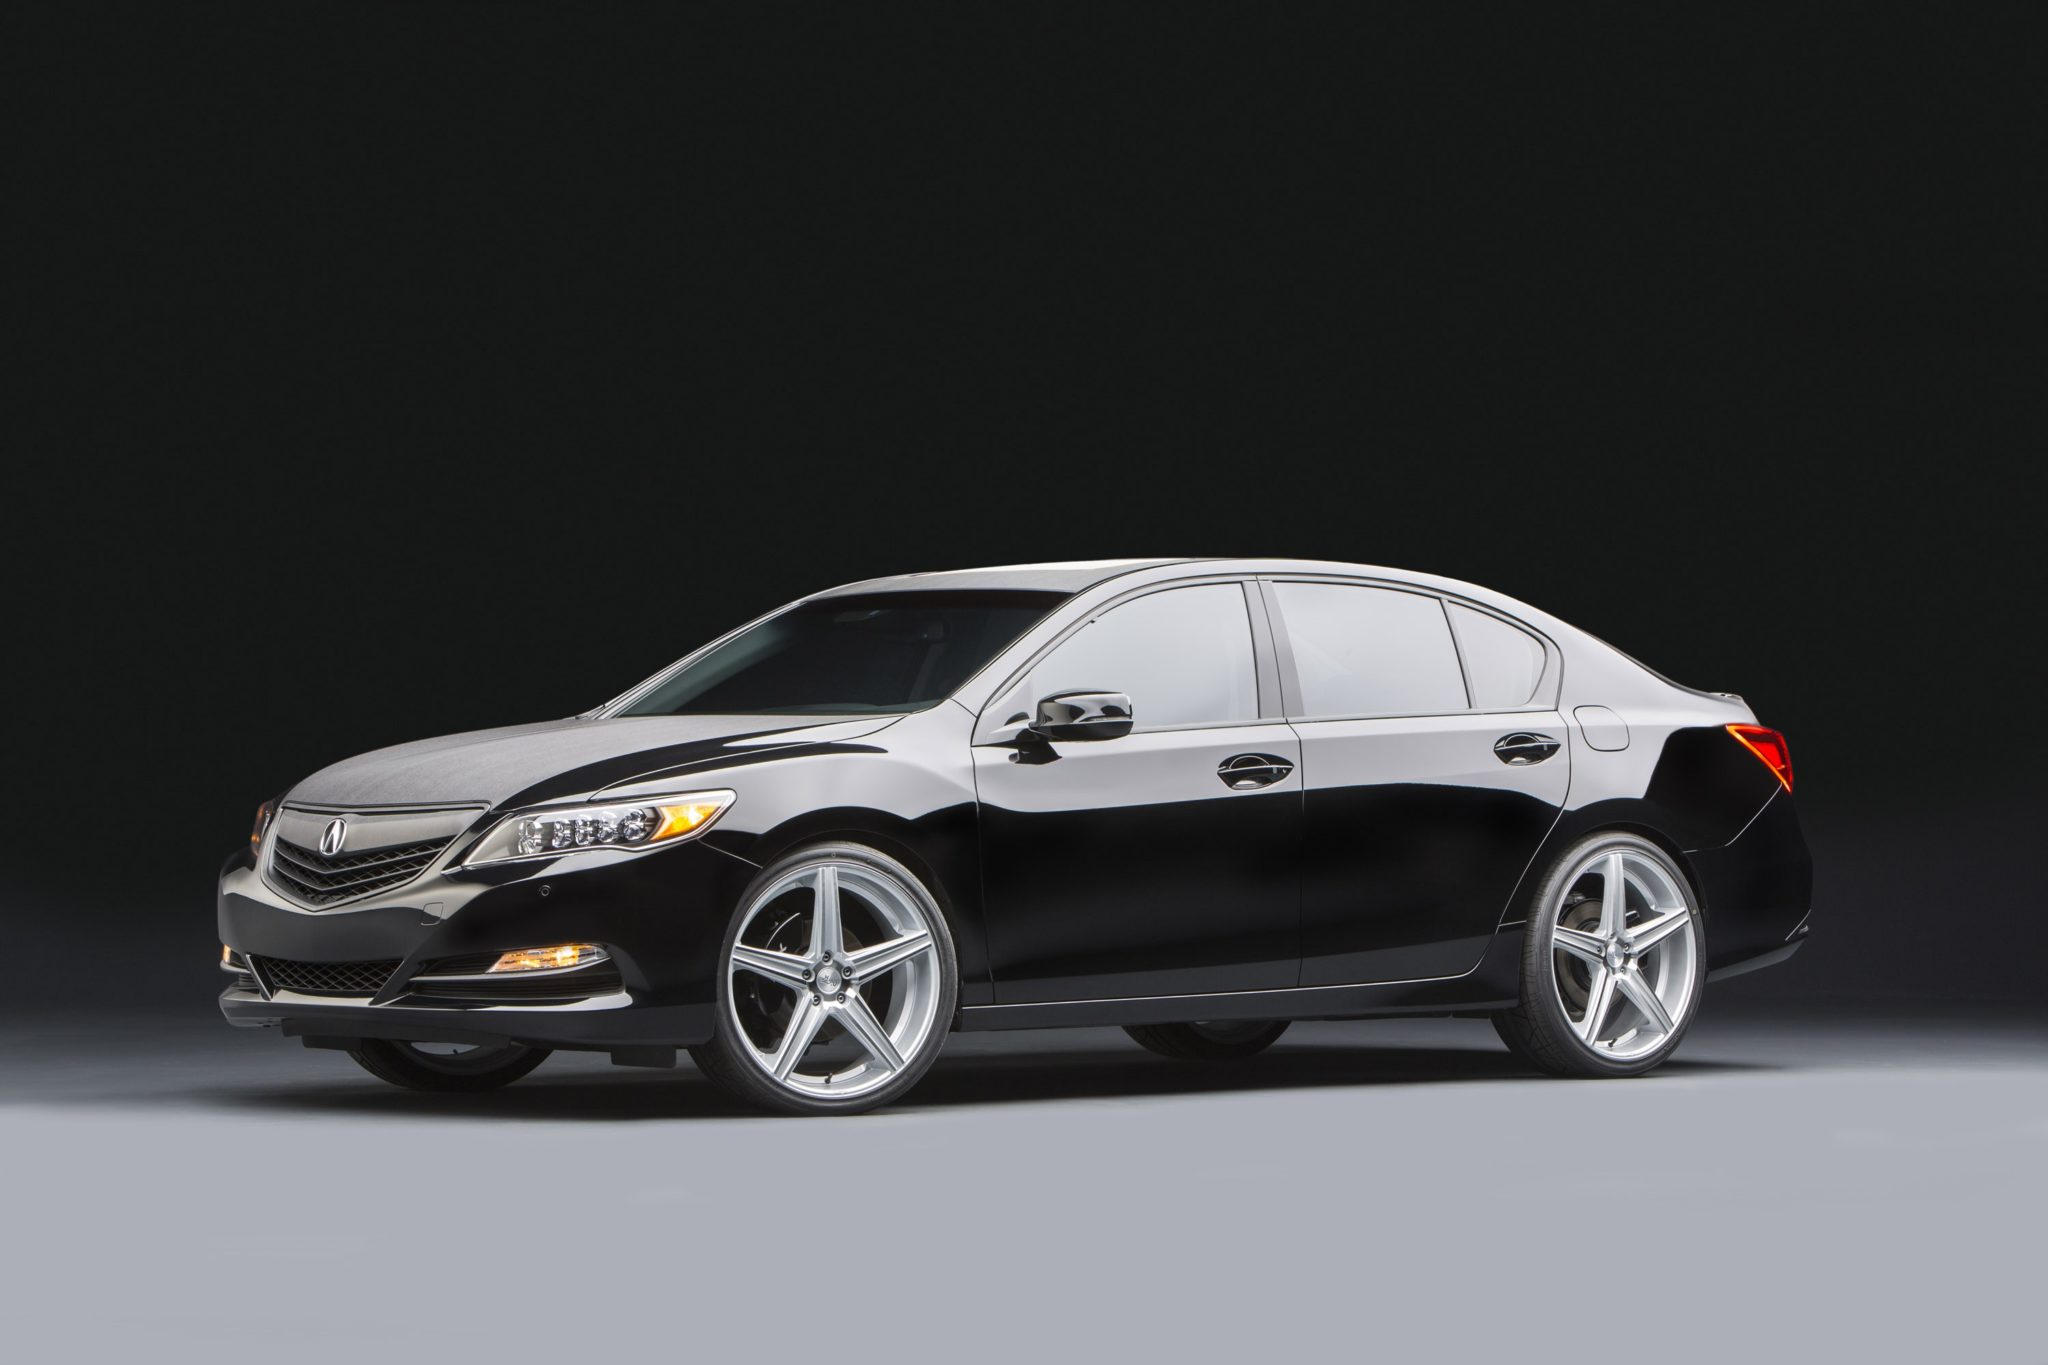 2014 Acura RLX Urban Luxury Sedan